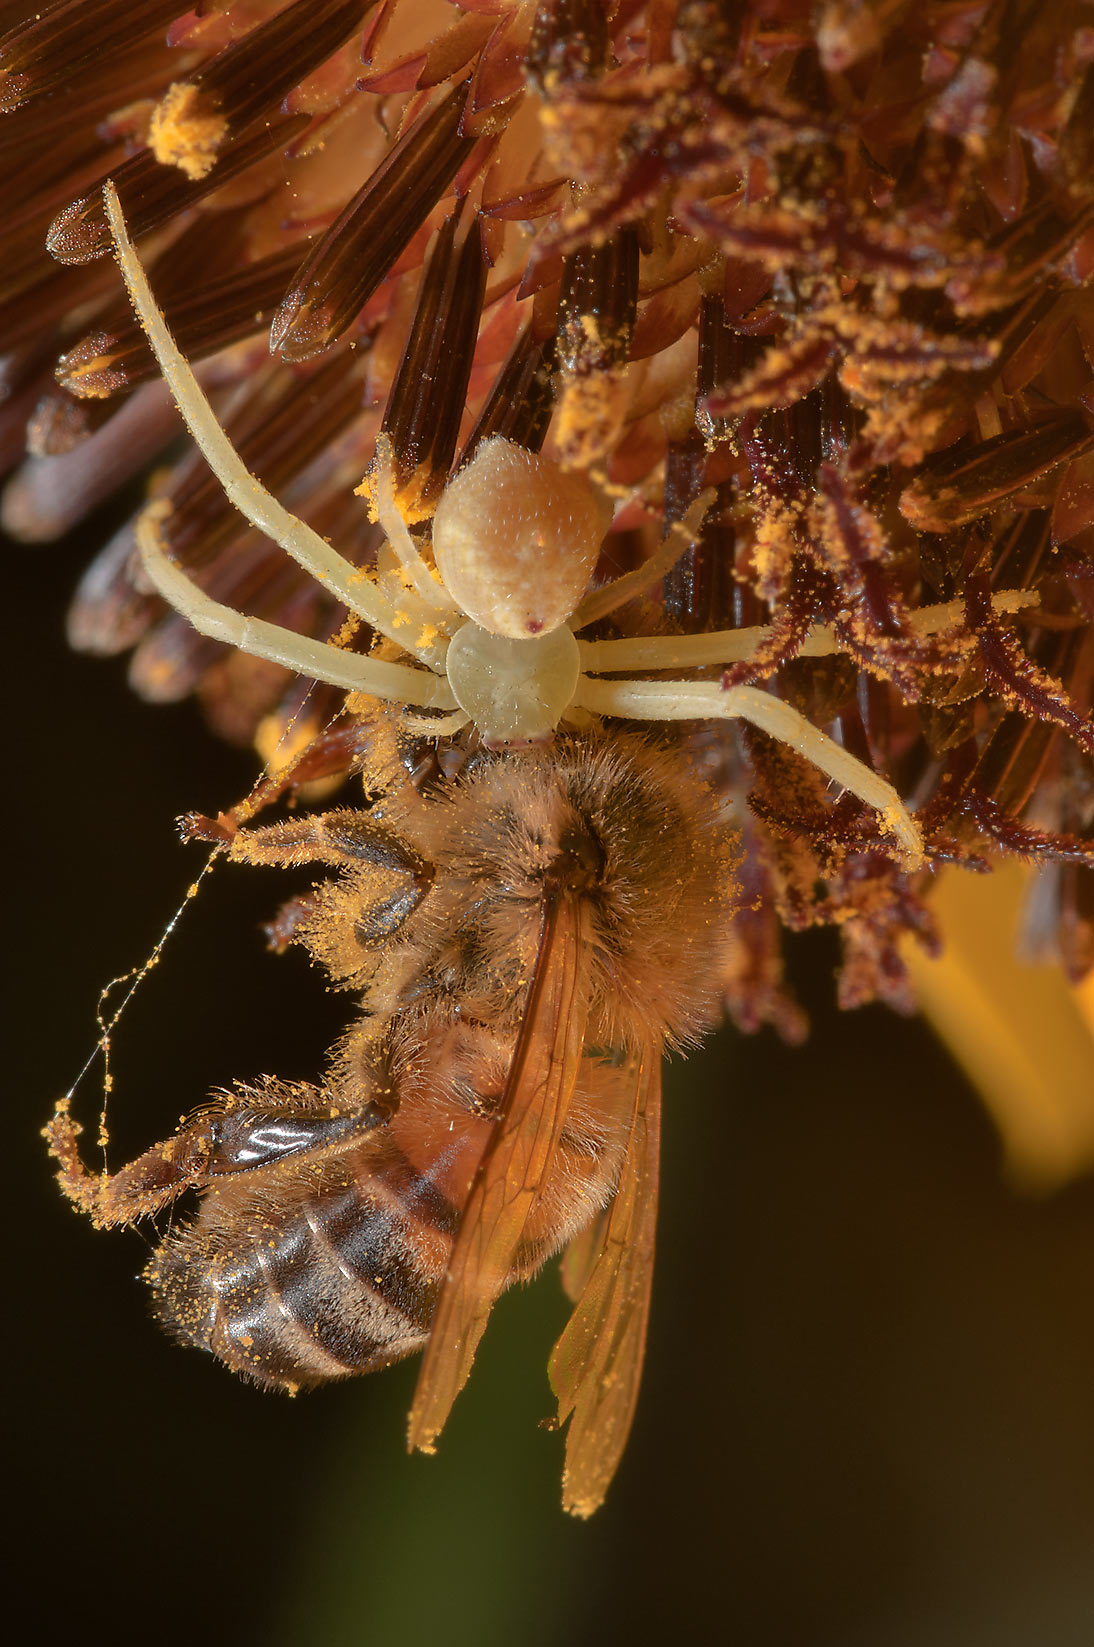 Crab spider eating a honey bee in Lake Bryan Park. Bryan, Texas